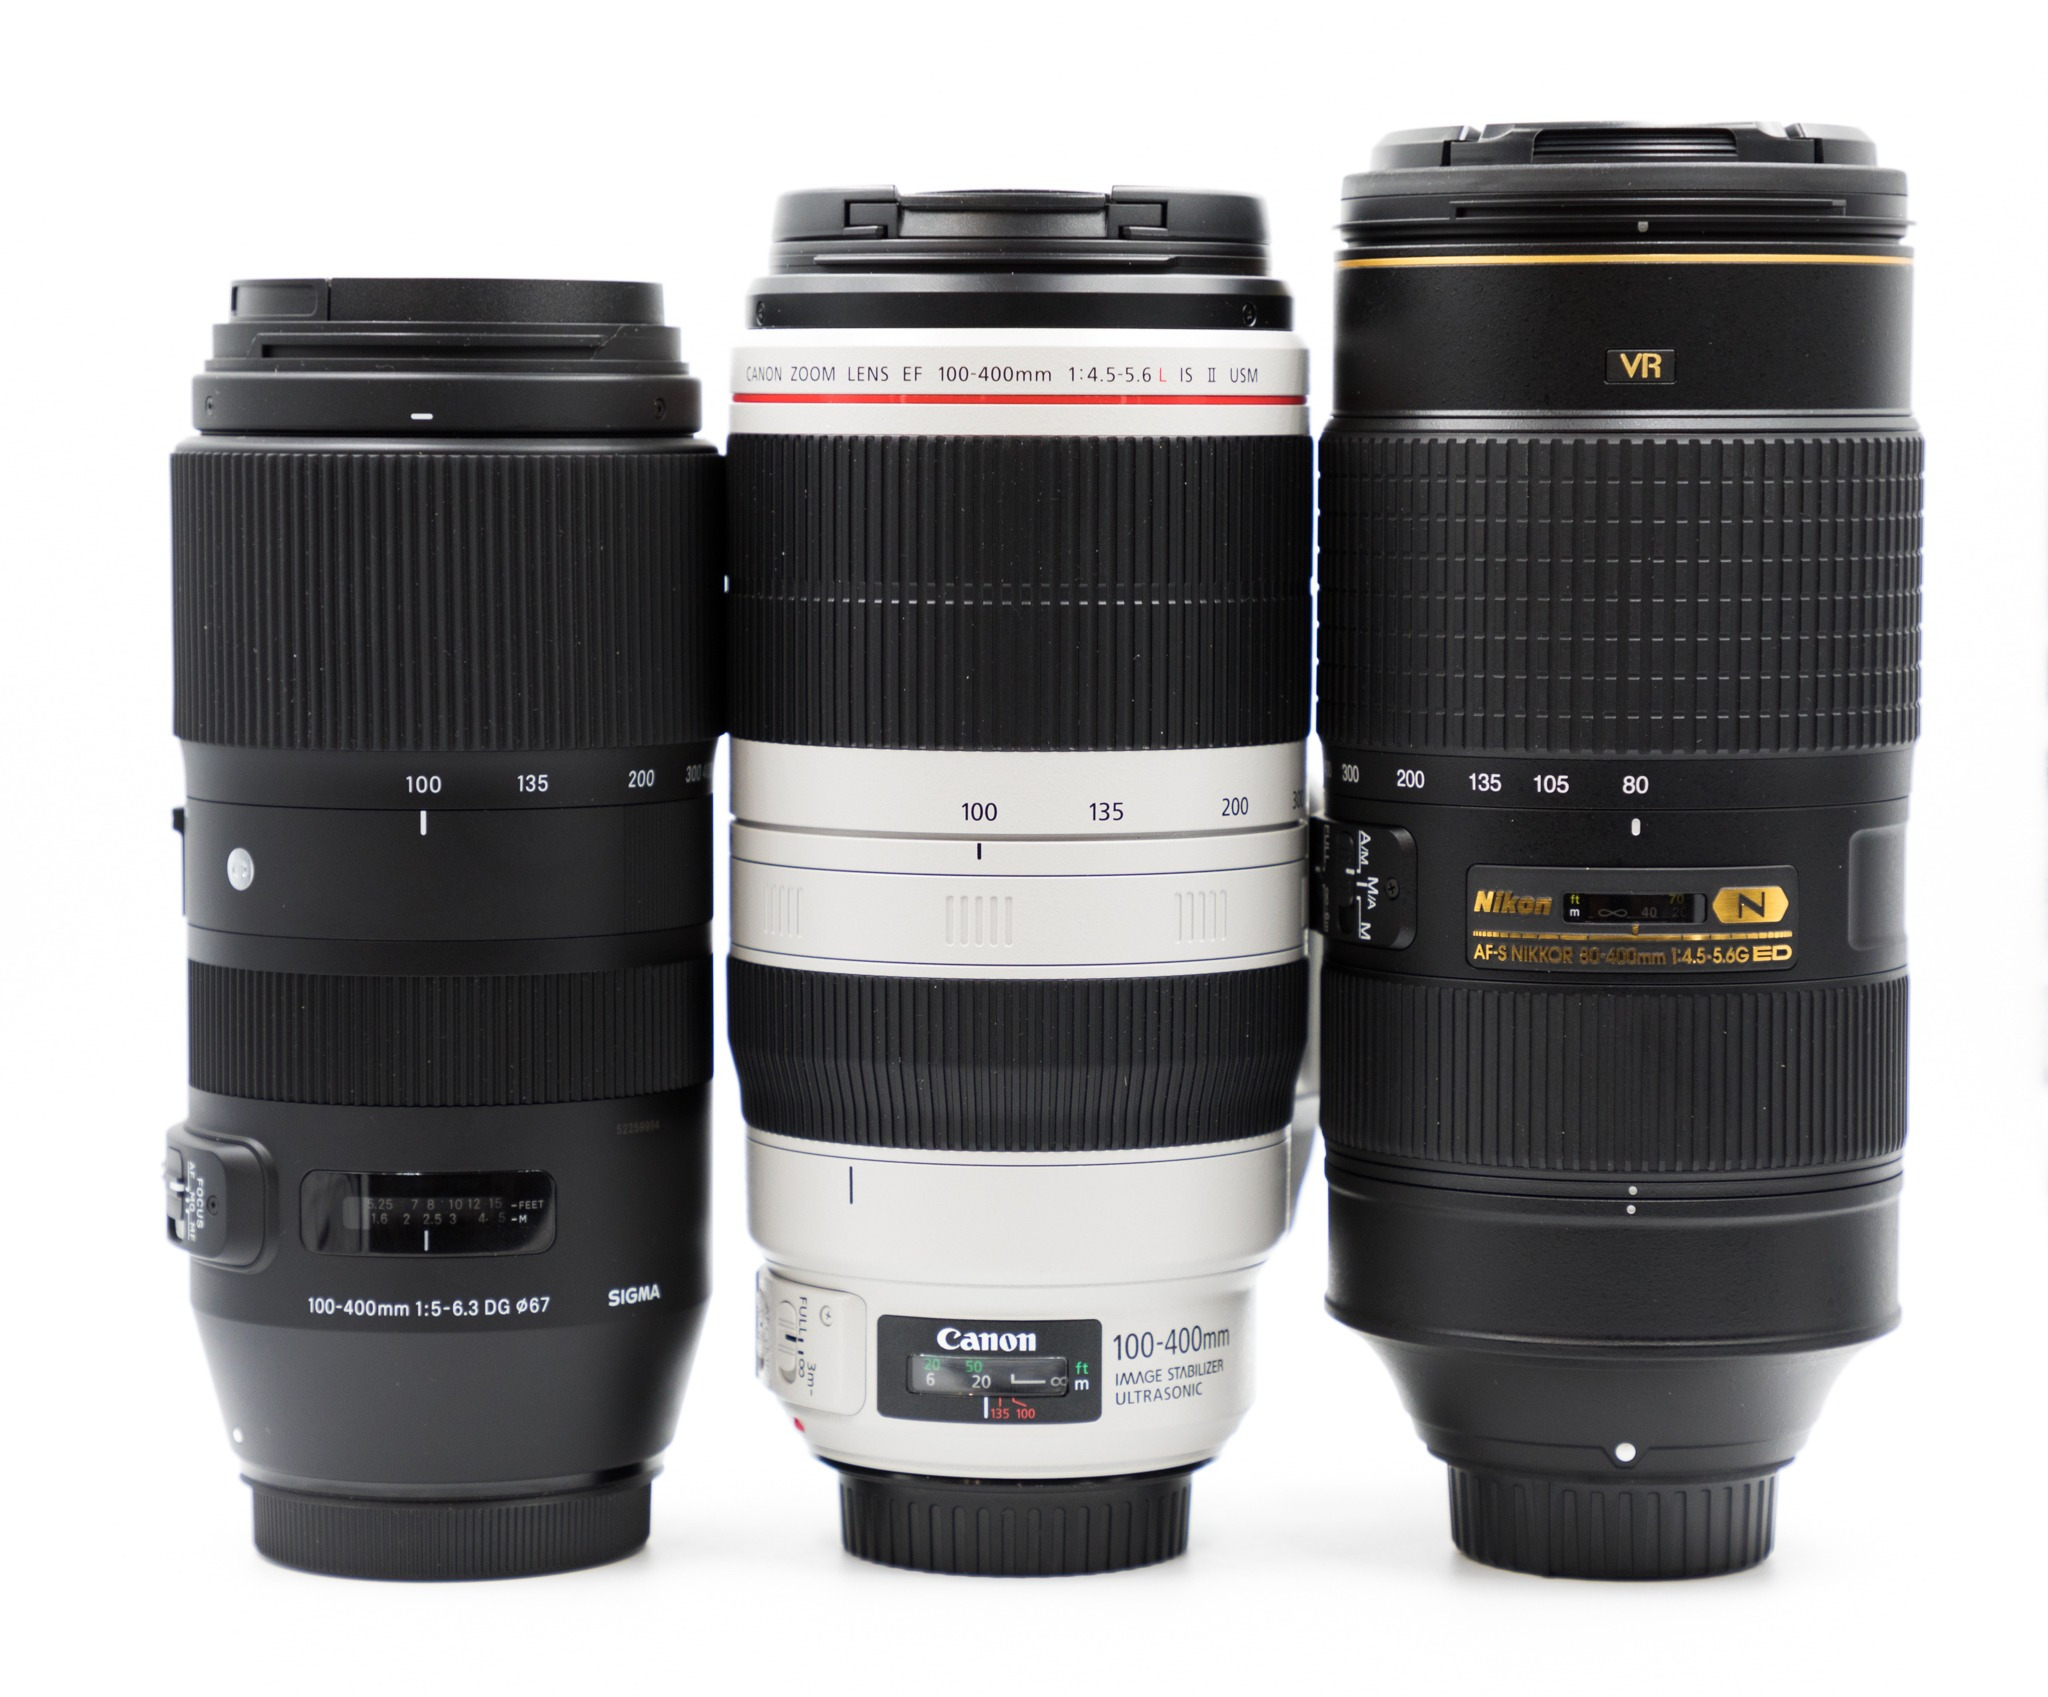 A first look at Sigma's new 100-400mm Contemporary